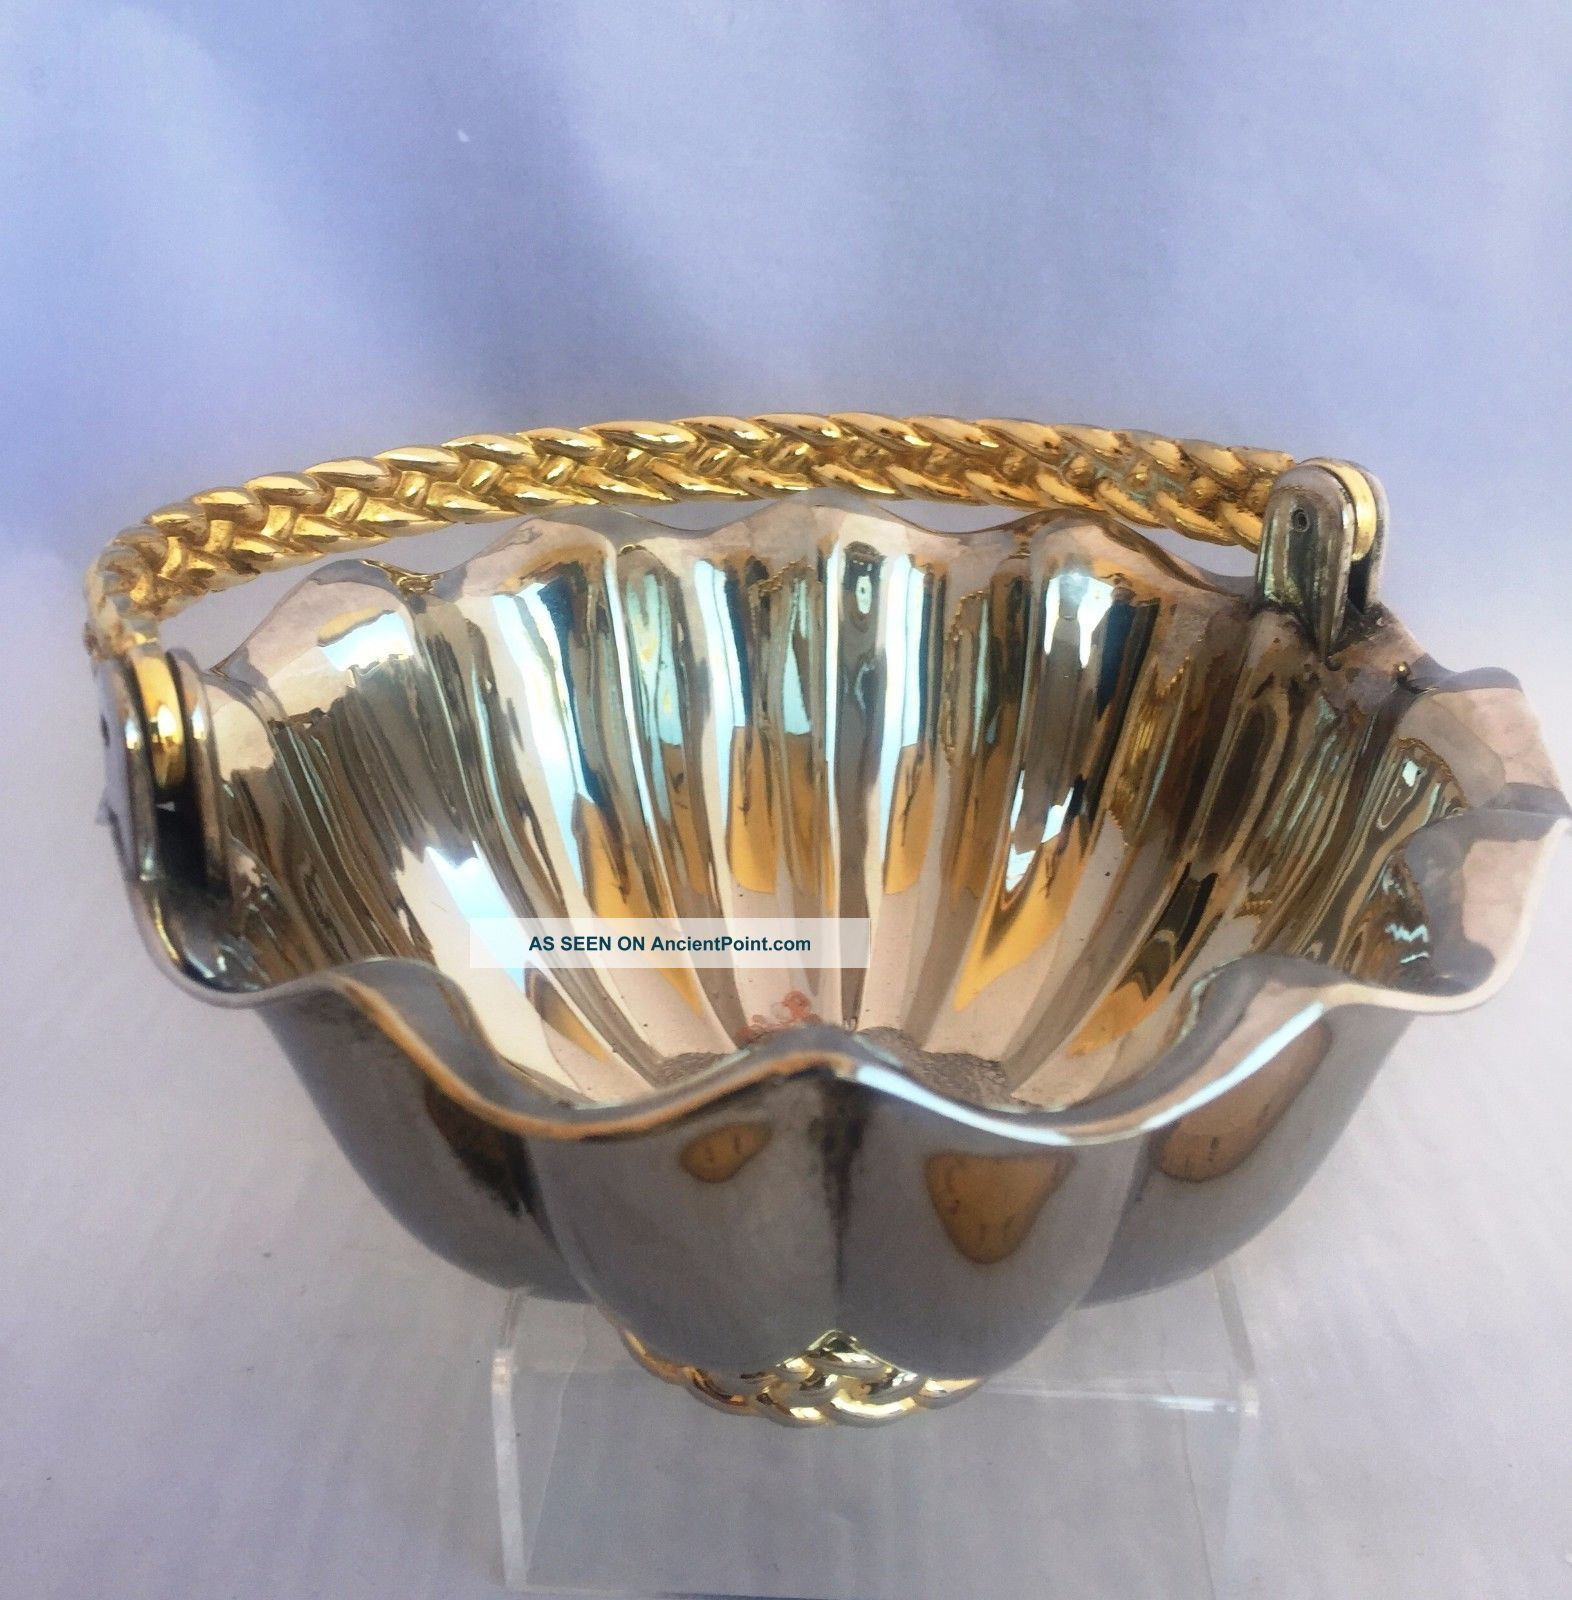 Silver Plate Scalloped Basket With Gold Tone Braided Handle. Baskets photo